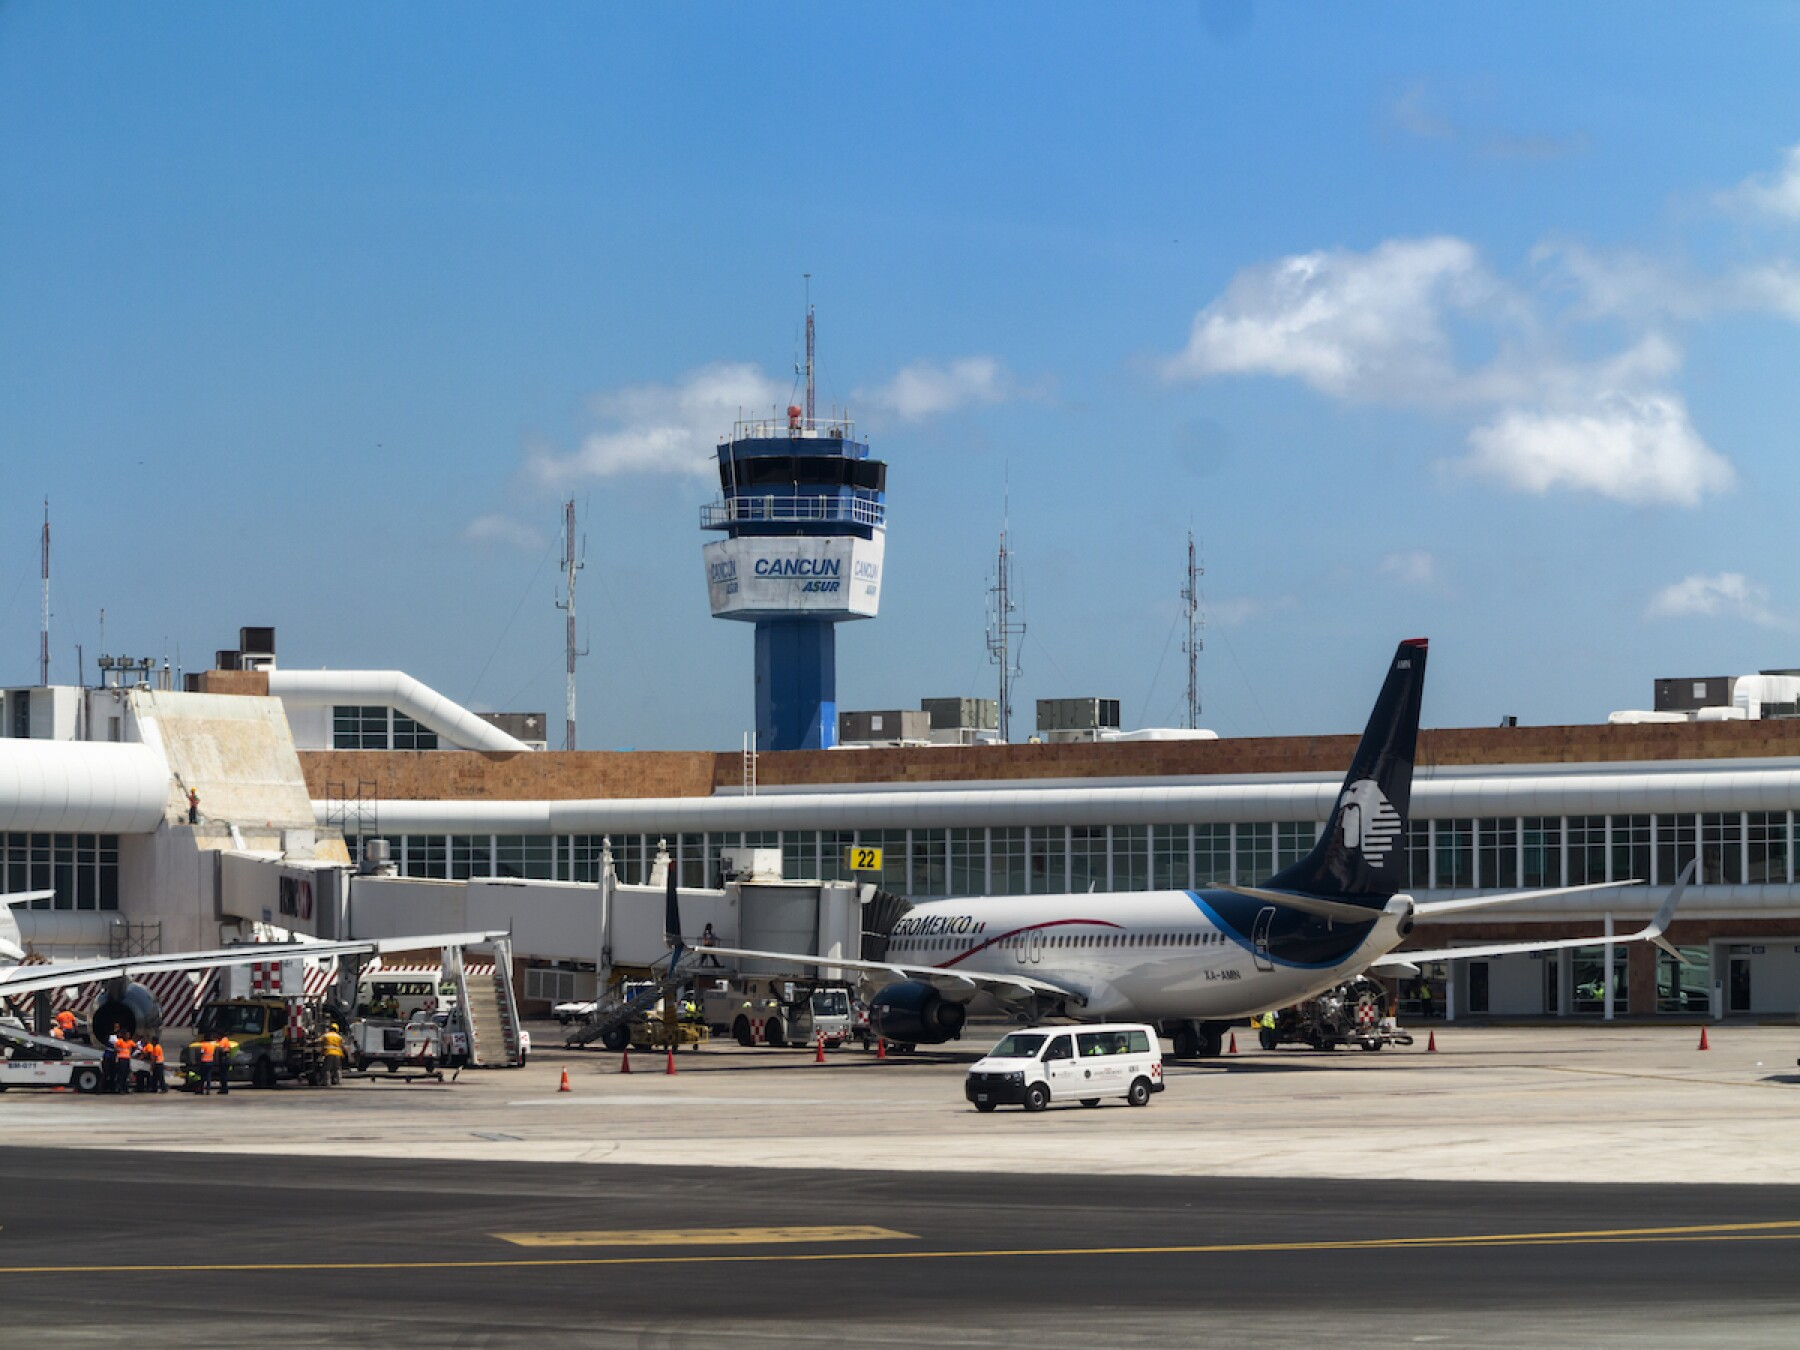 Cancun, Mexico, airport tower and gates